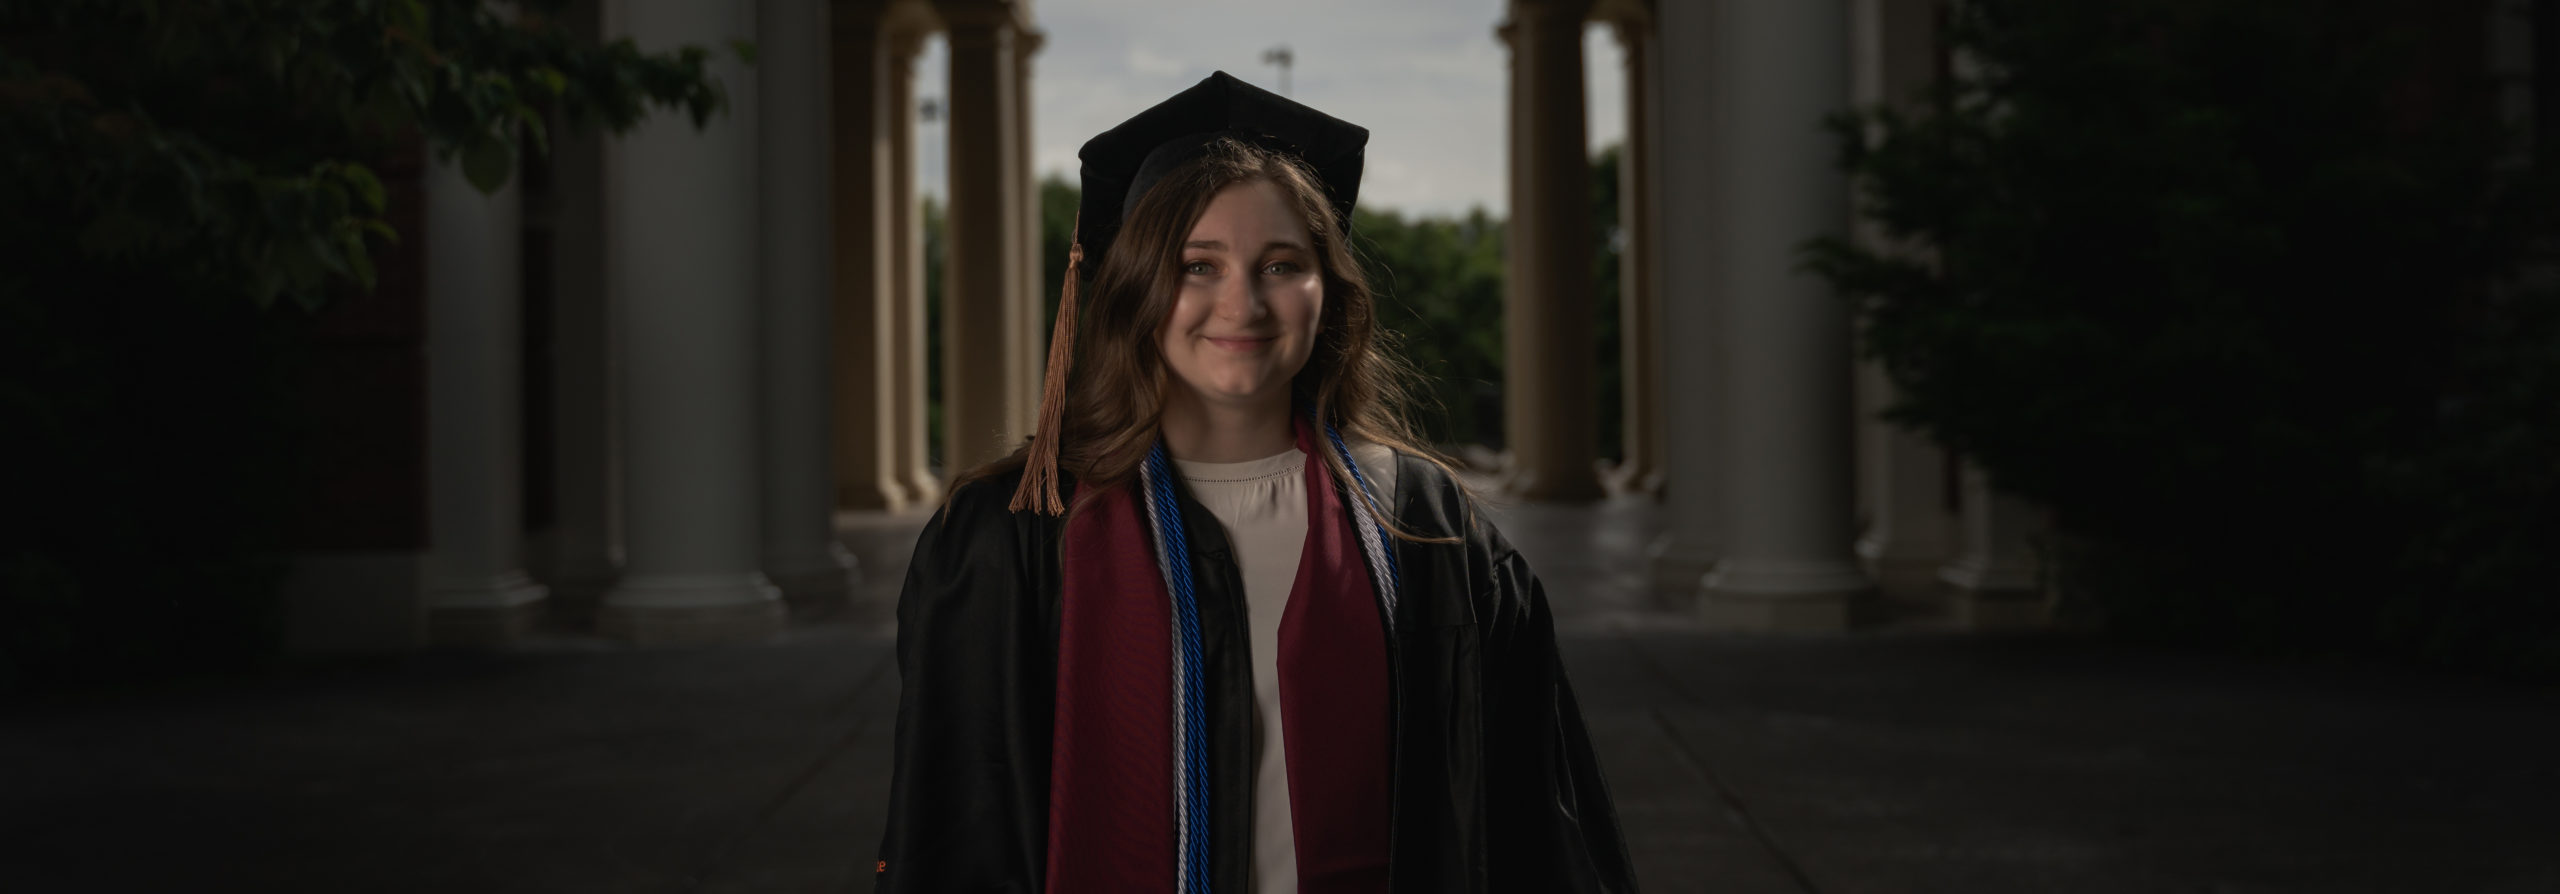 Victoria Houdeshell – Honors College Class of 2020